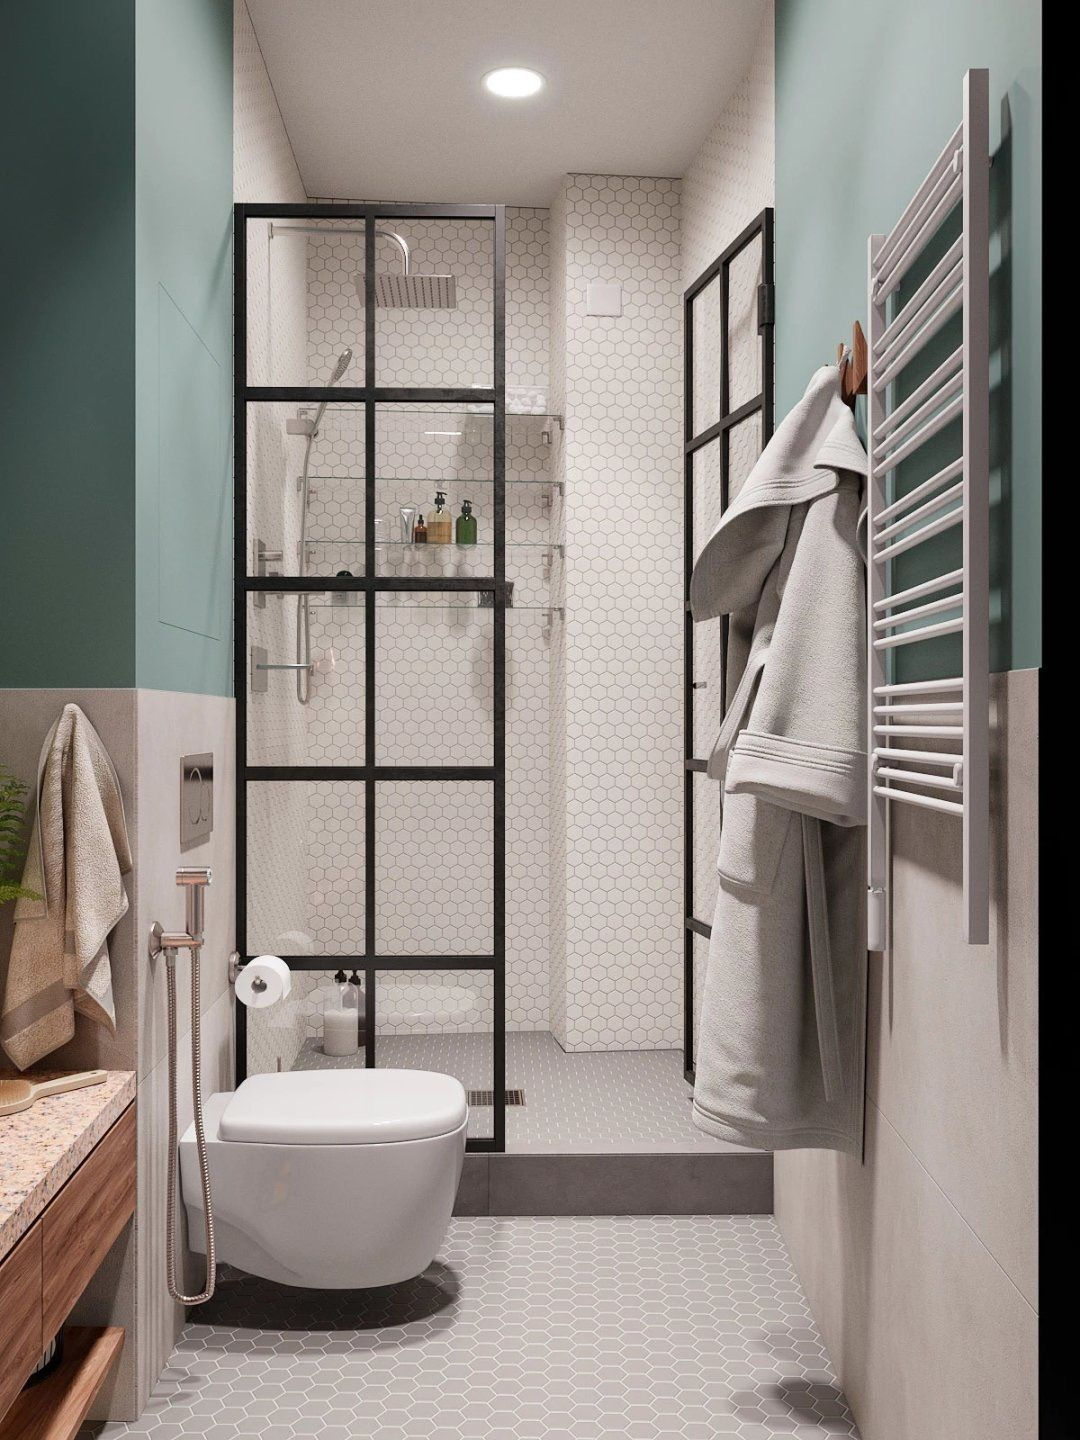 12 Small Bathroom Remodel Ideas When You Are On A Budget Modern